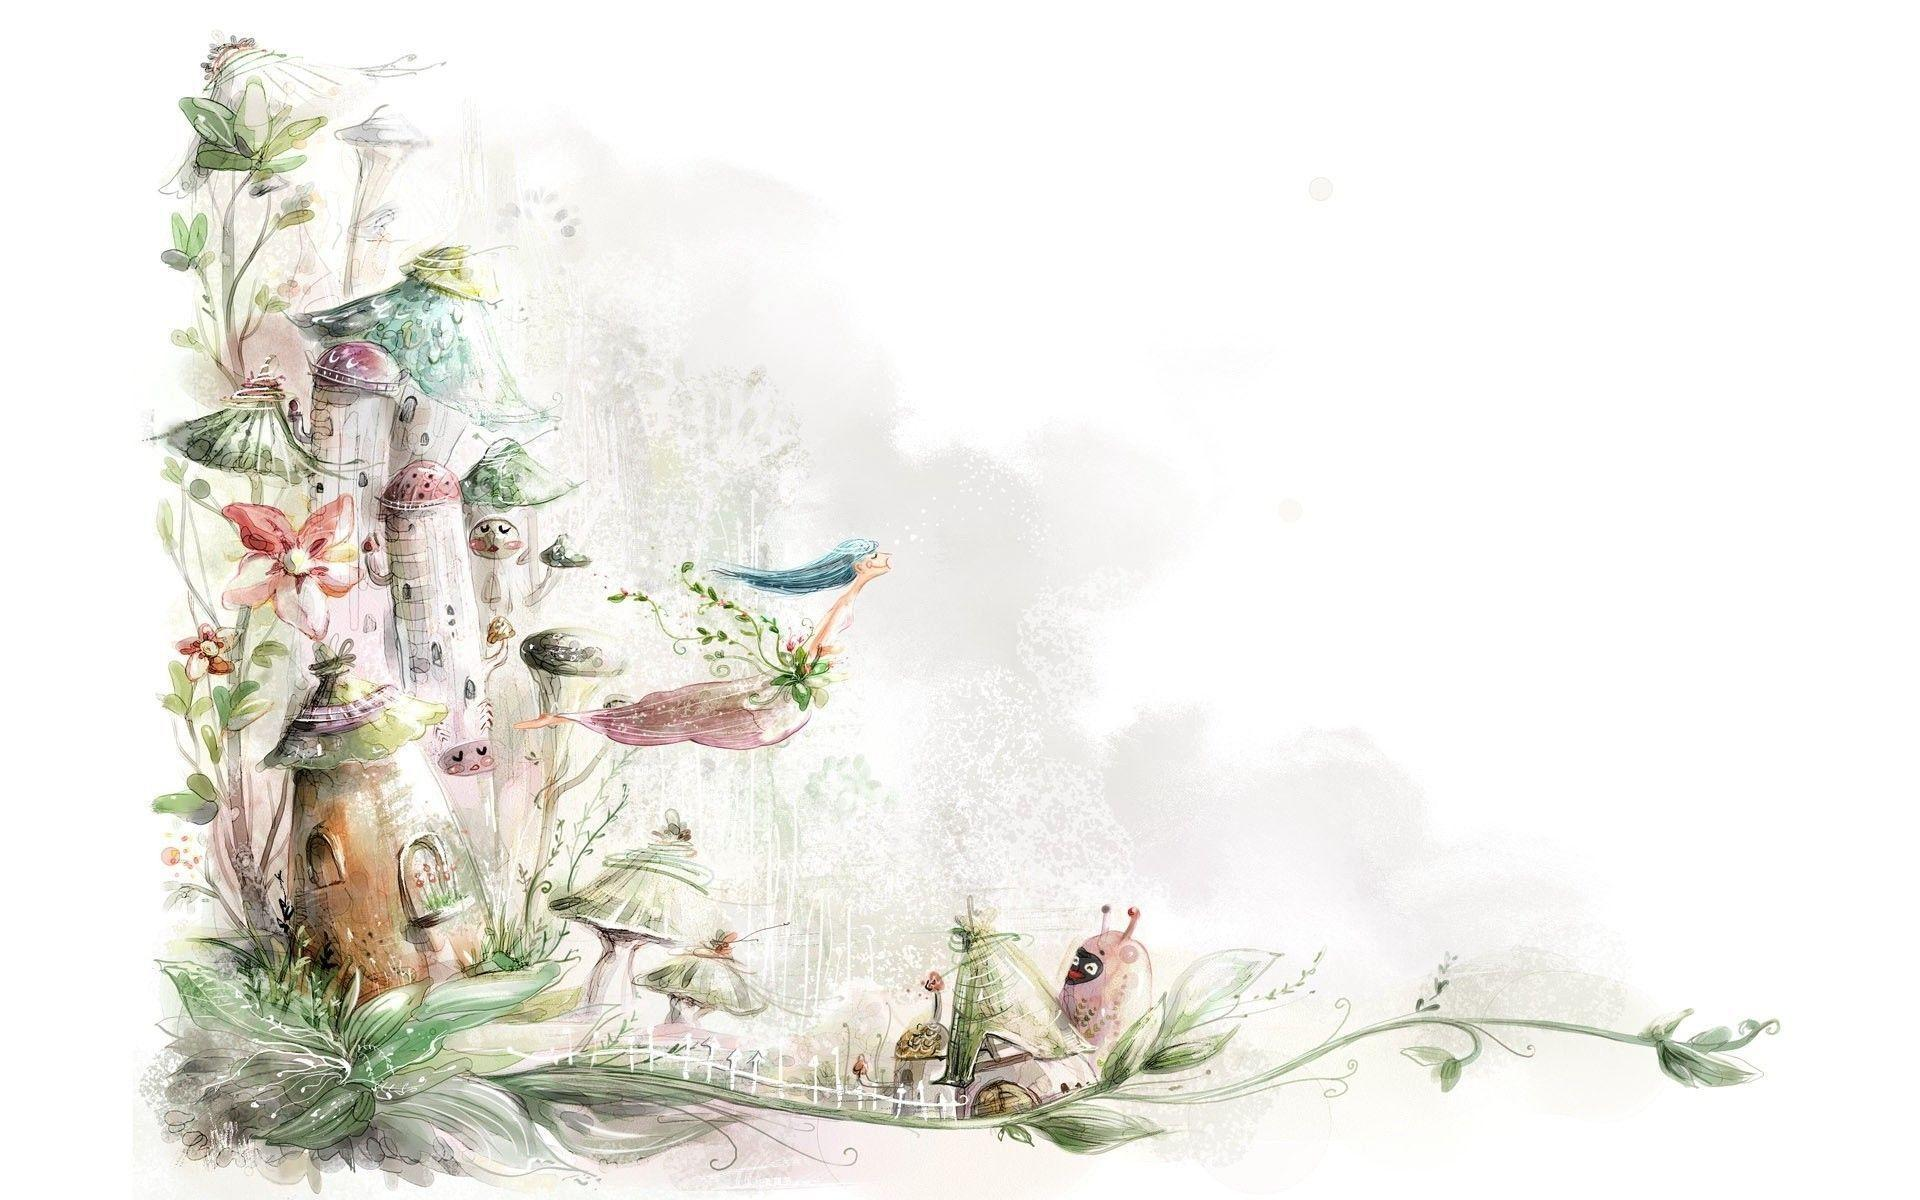 fairy tale powerpoint template free download - fairy tale wallpapers wallpaper cave